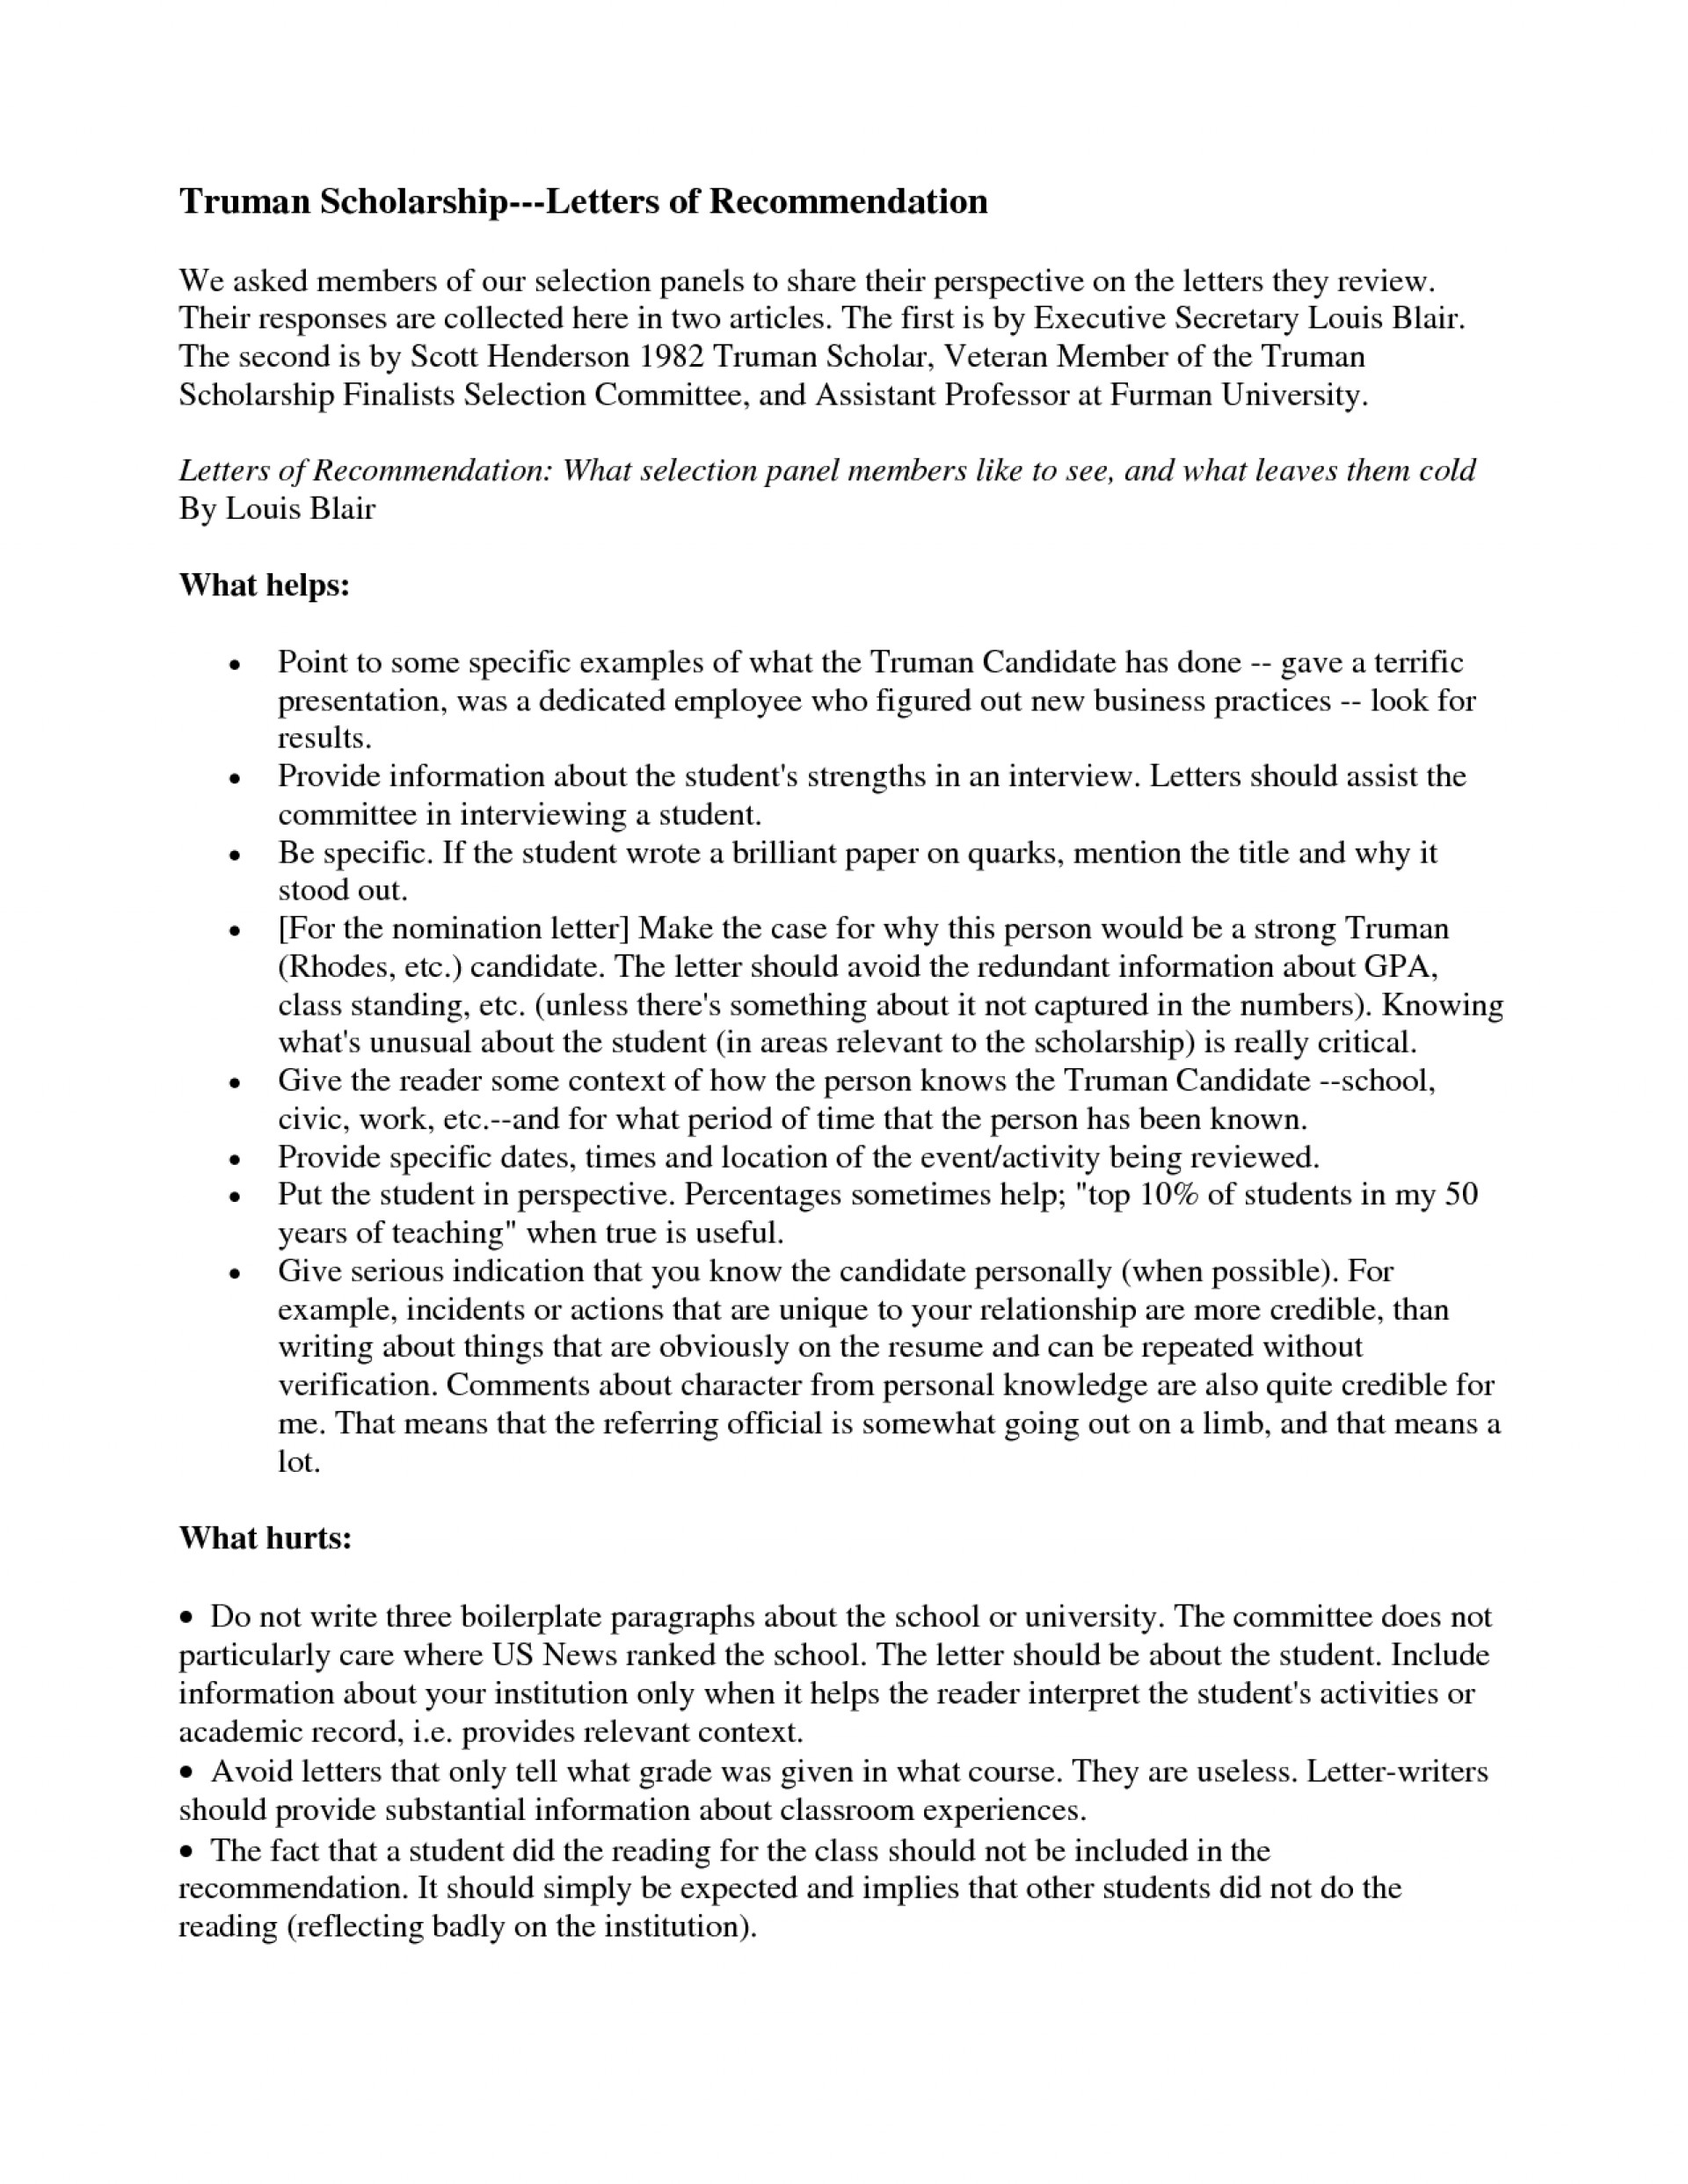 011 Essay Example Qualities Of Good Cover Letters With Letter And Scholarship Recommendation Hr0thxwq 1275x1650px What Are Formidable The A Leader Characteristics Pdf Introduction Make 1920